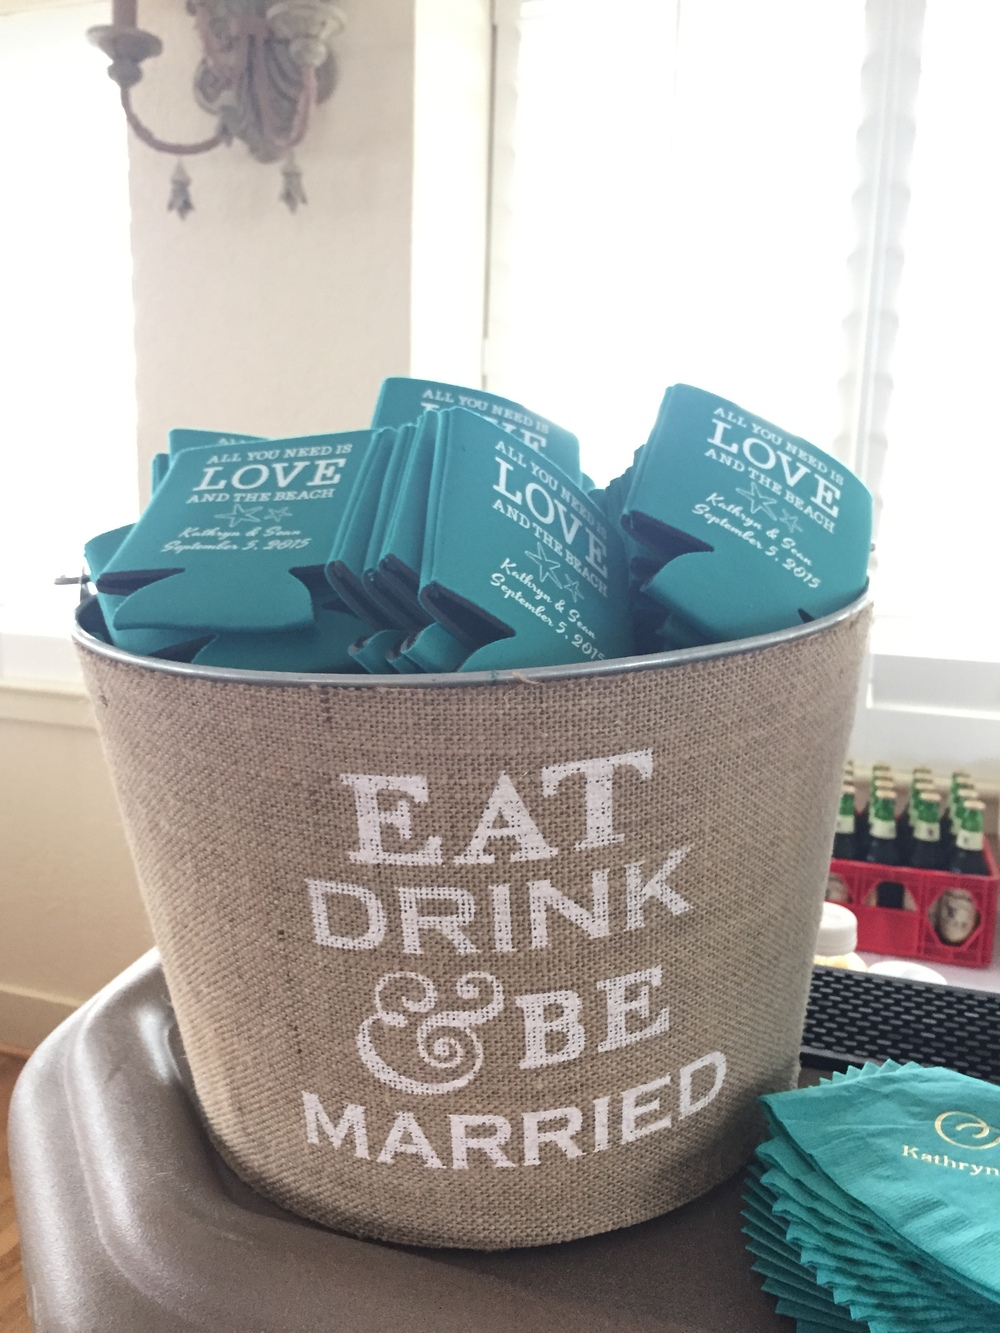 Who doesn't love a koozie!!?